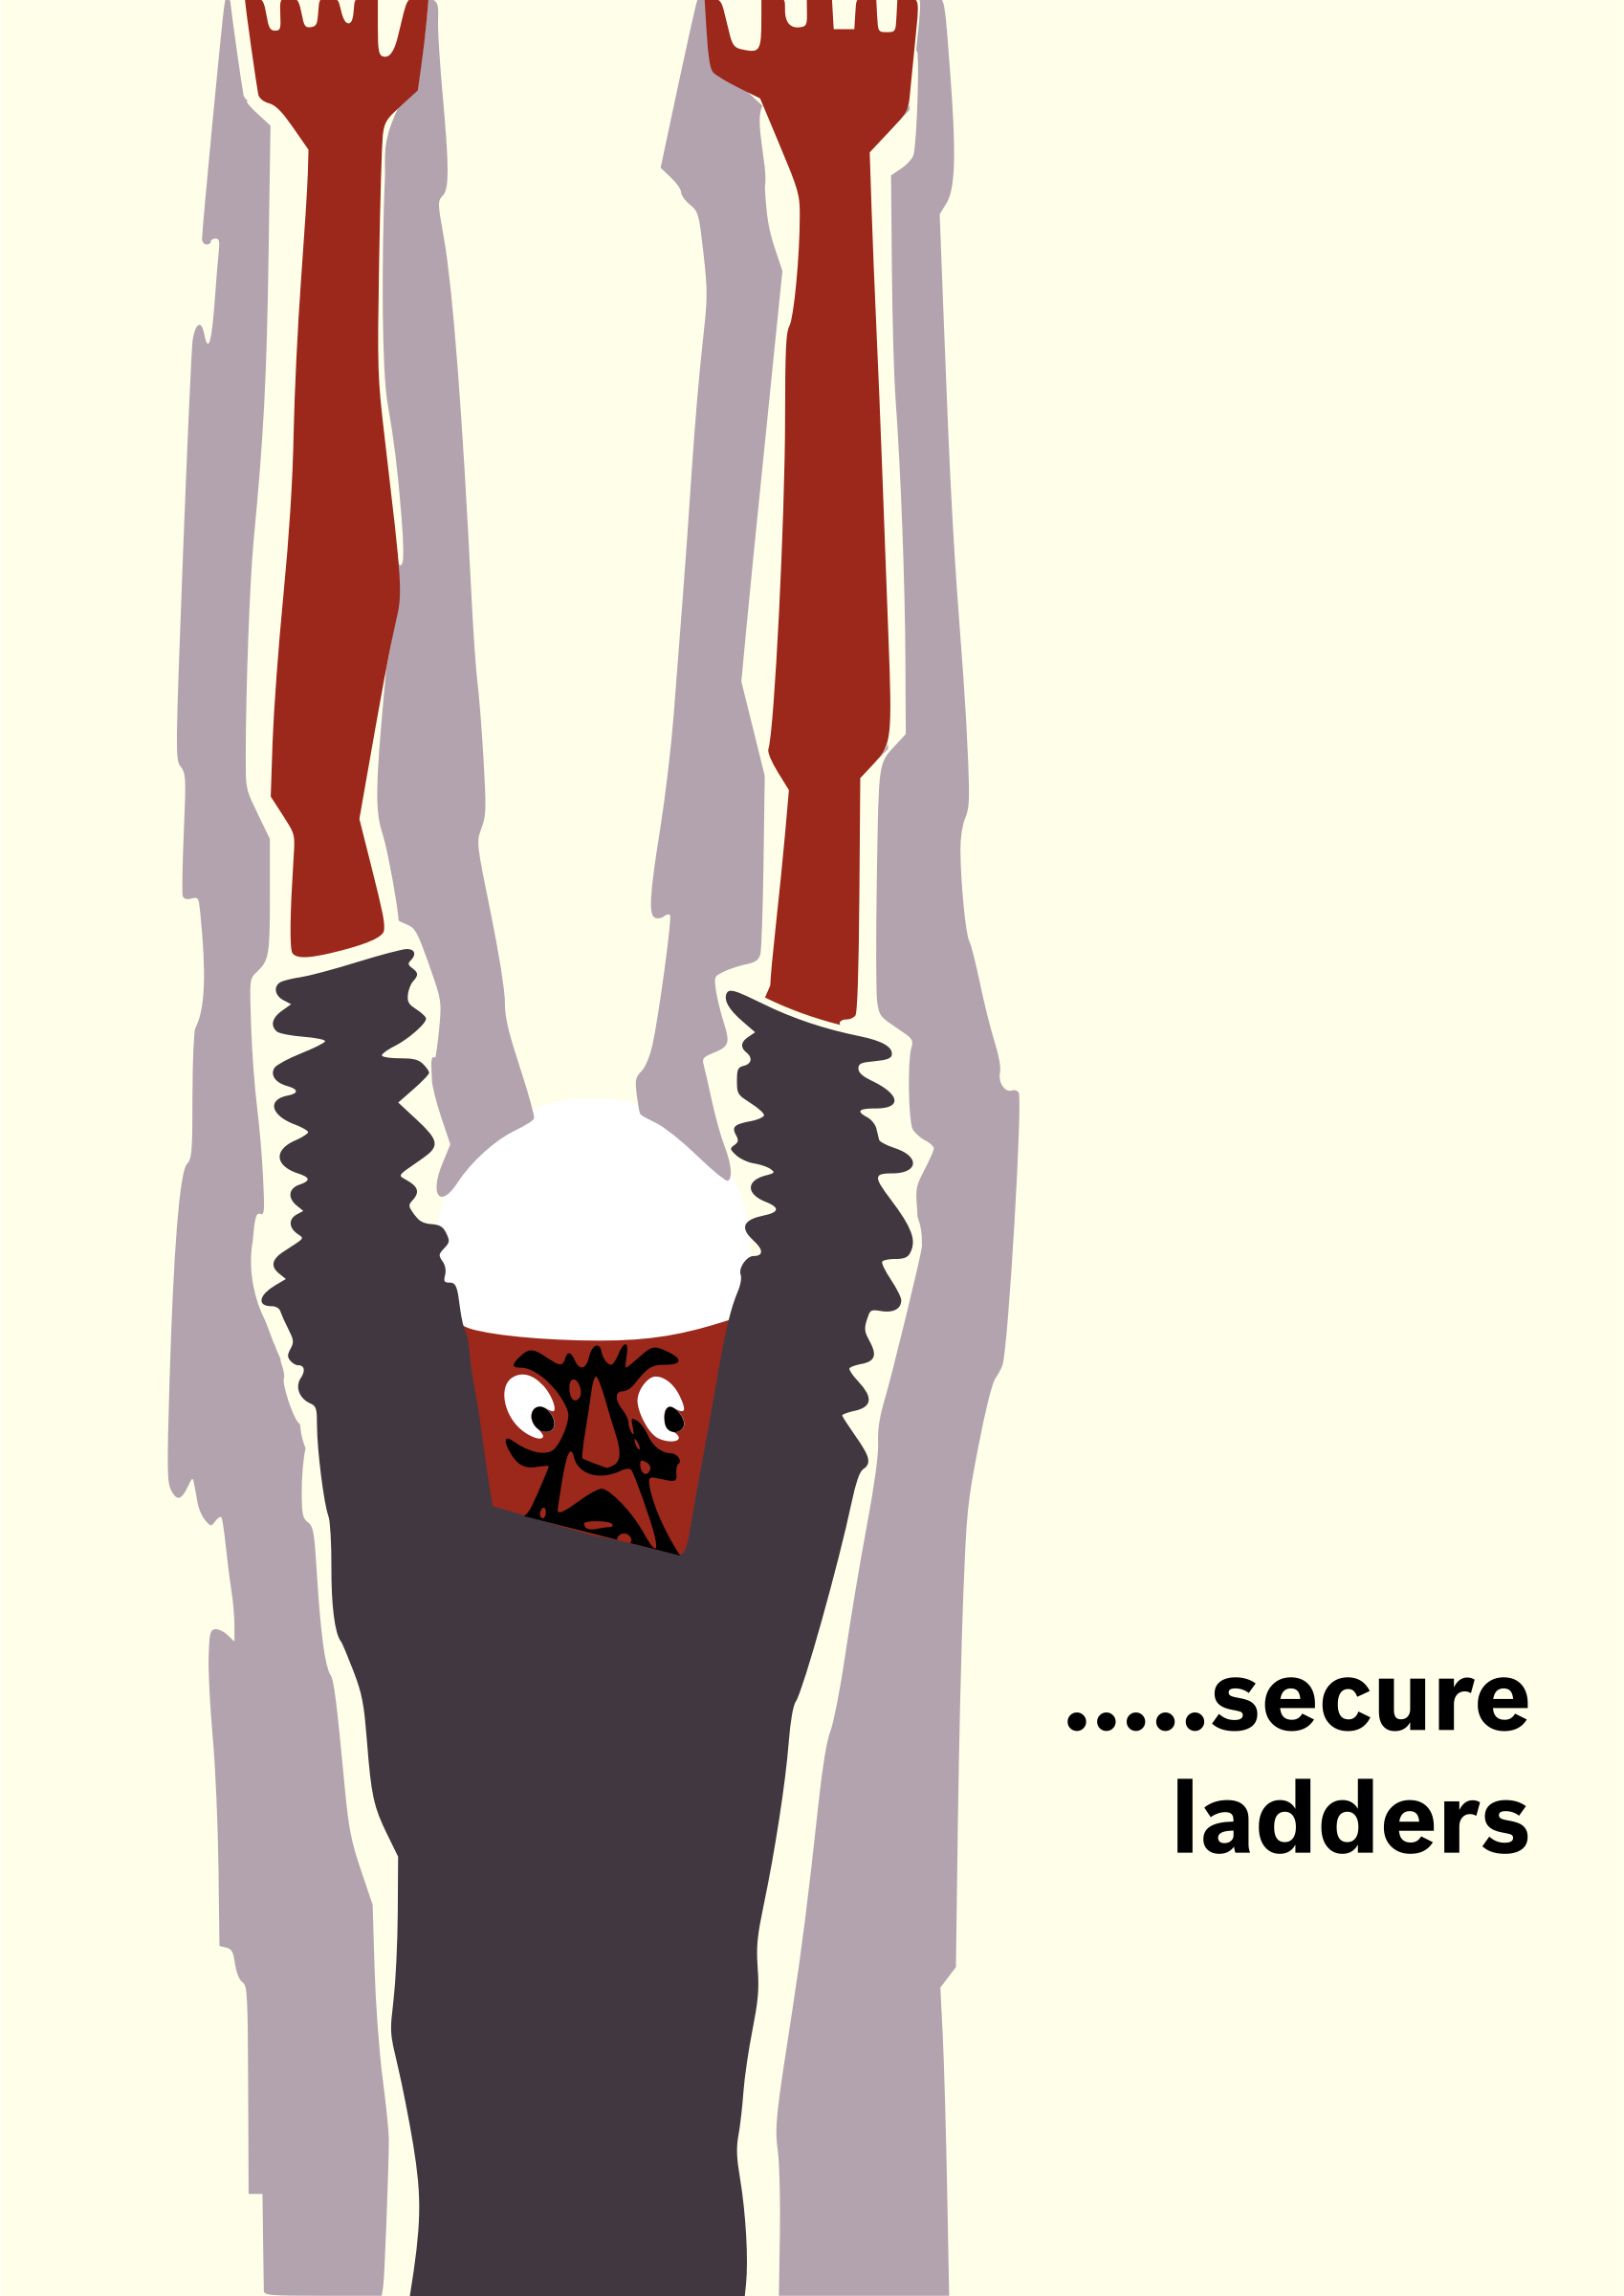 Secure Ladders by pyCat